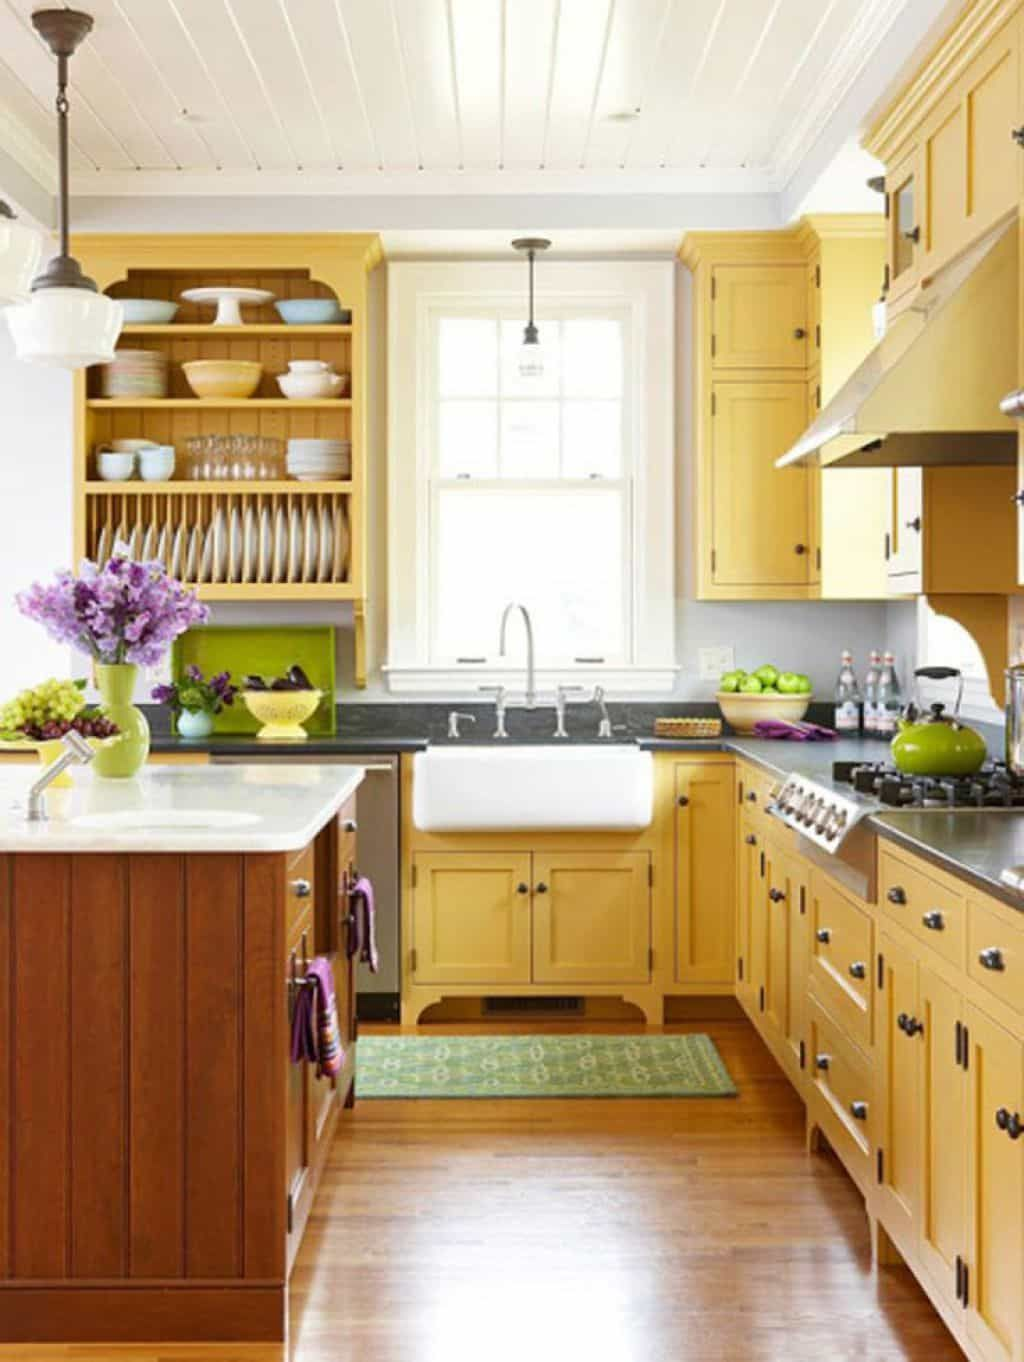 Airy Kitchen With Yellow Kitchen Cabinets Colors And Apron White Sink Beautiful Kitchen Cabinets Yellow Kitchen Cabinets Yellow Kitchen Decor